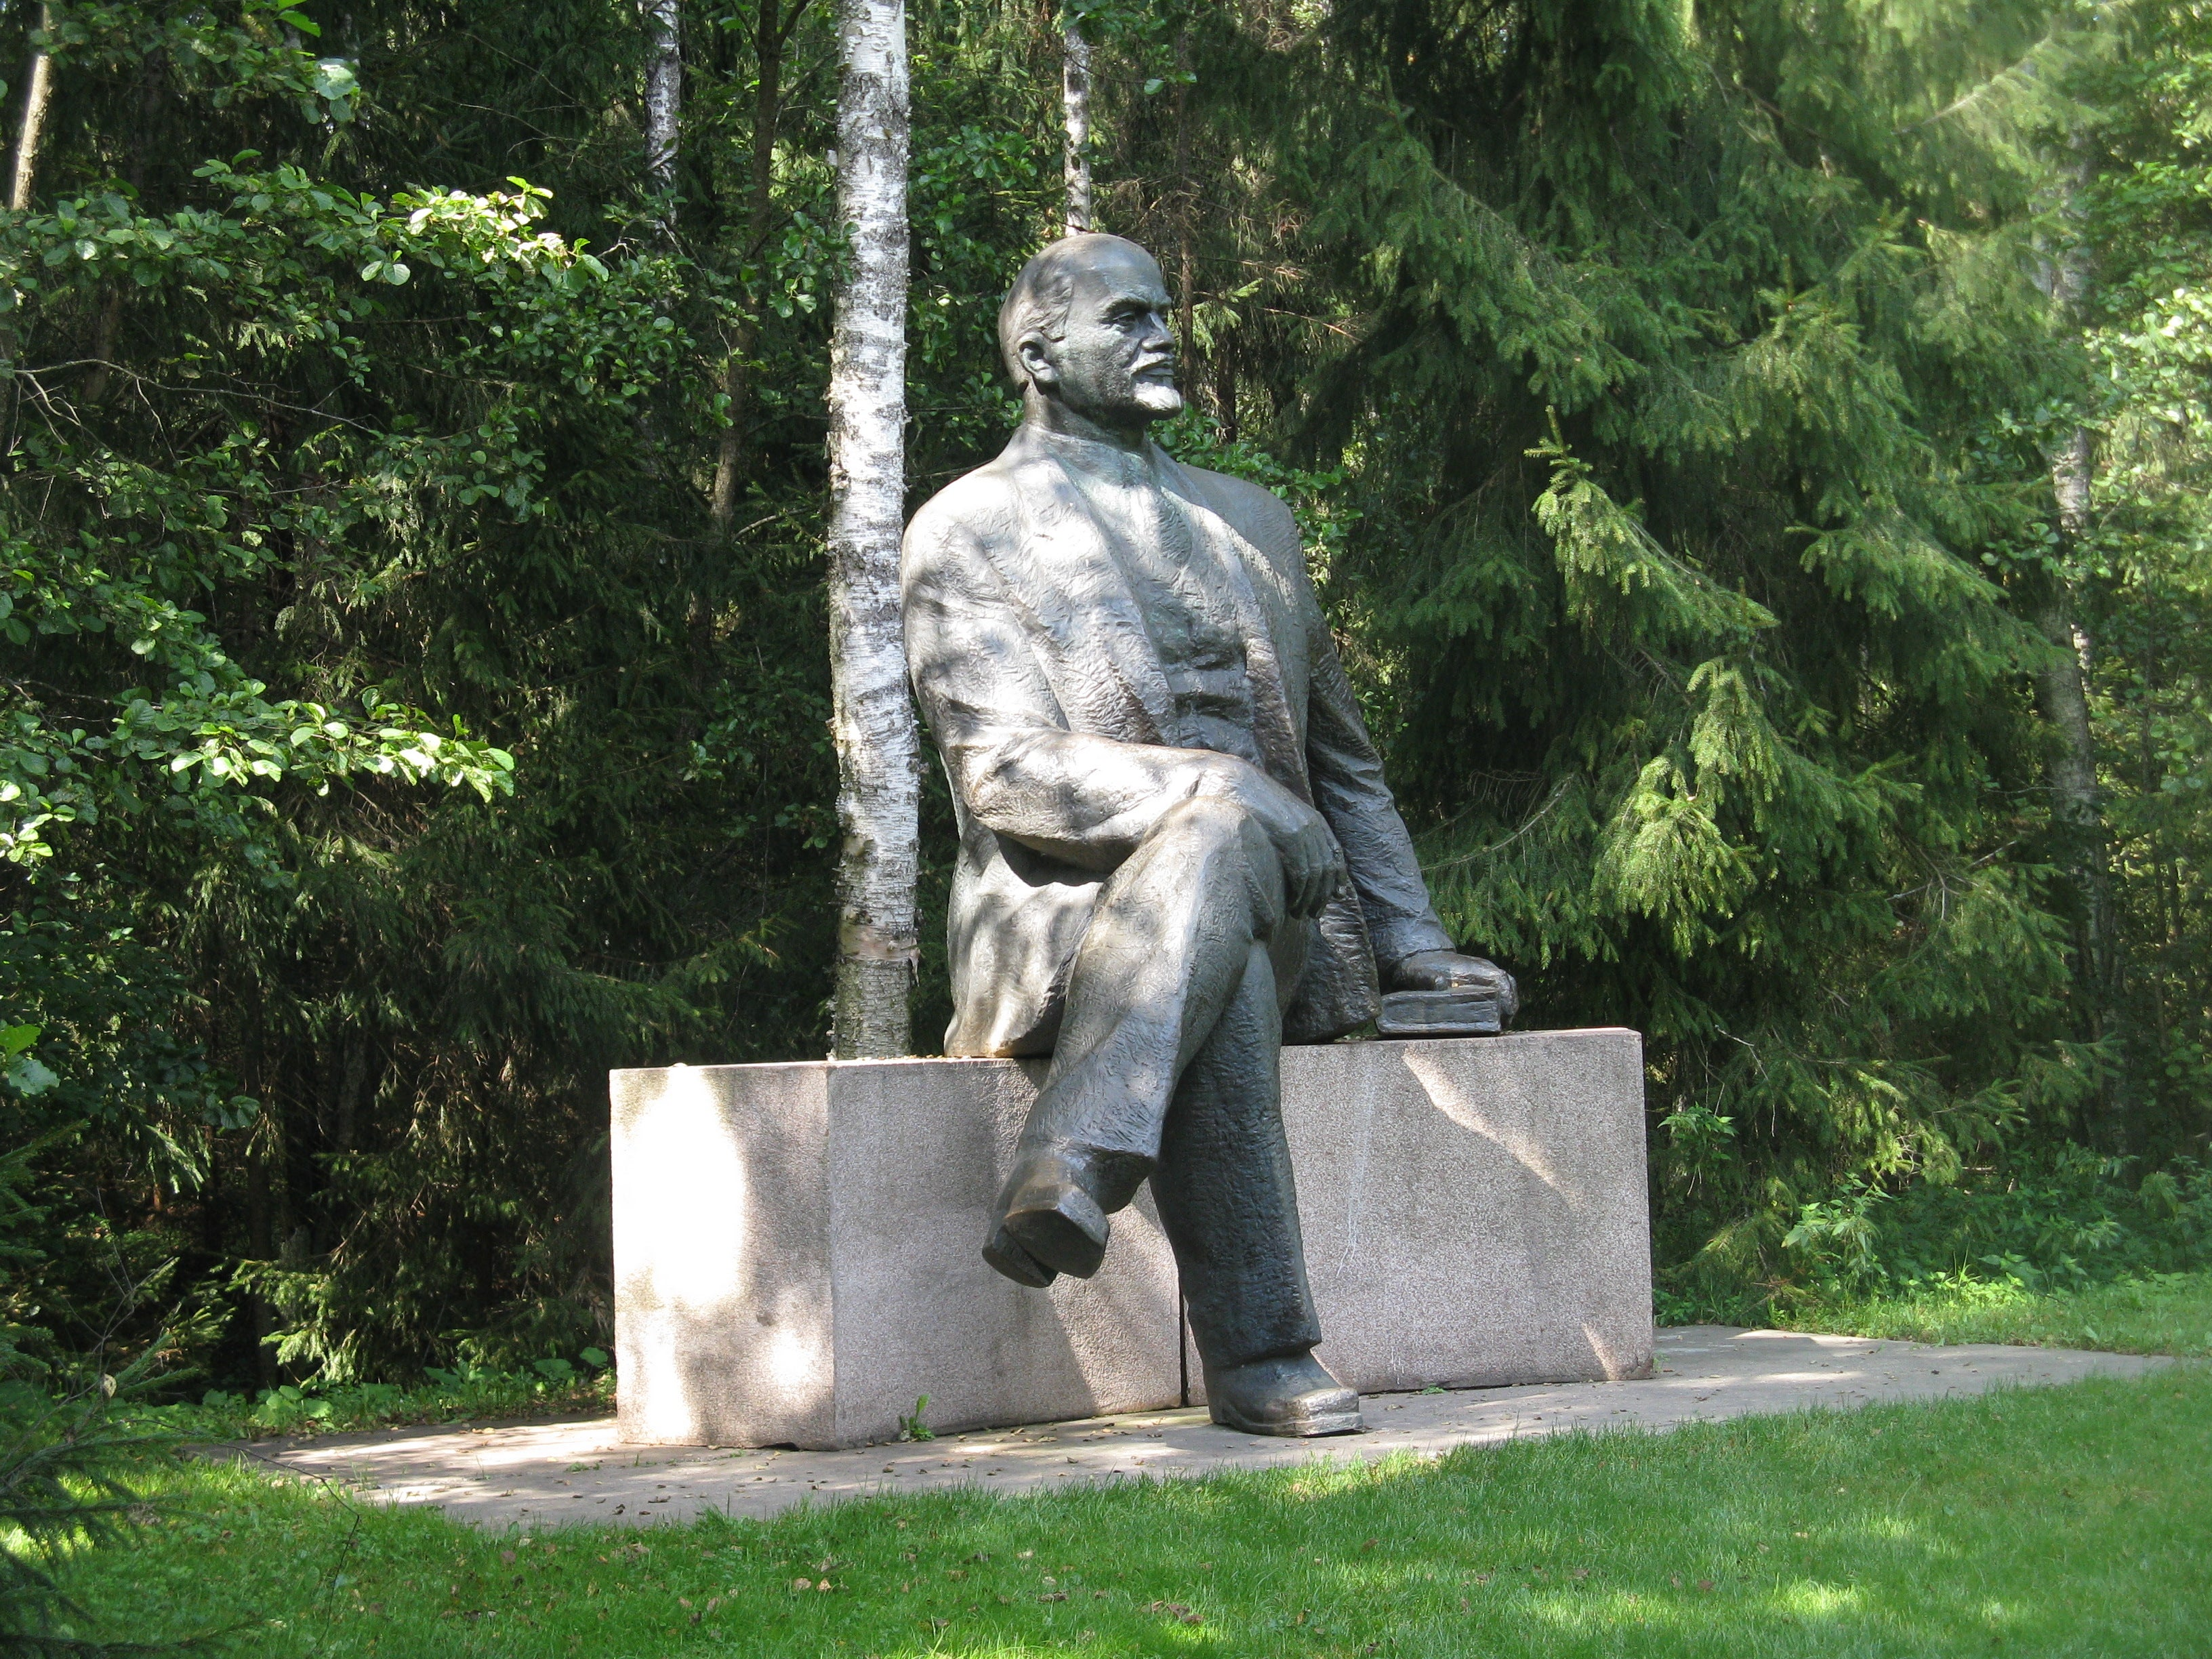 Park of the Soviet Statues